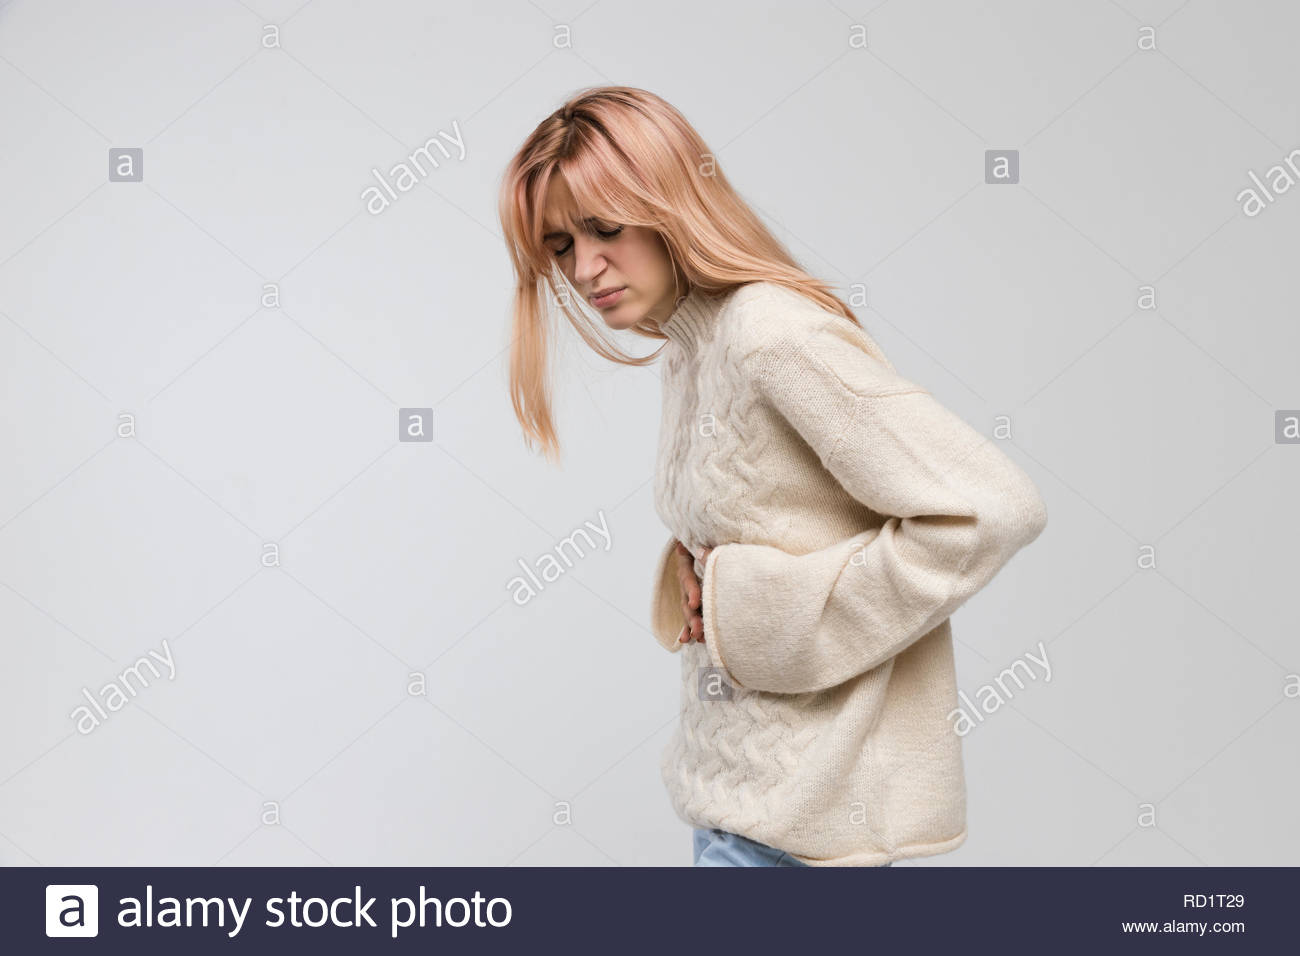 Young cute woman in white sweater suffering from stomach ache, having menstruation pain, feels bad, abdominal cramps, side view. Menstrual period. - Stock Image